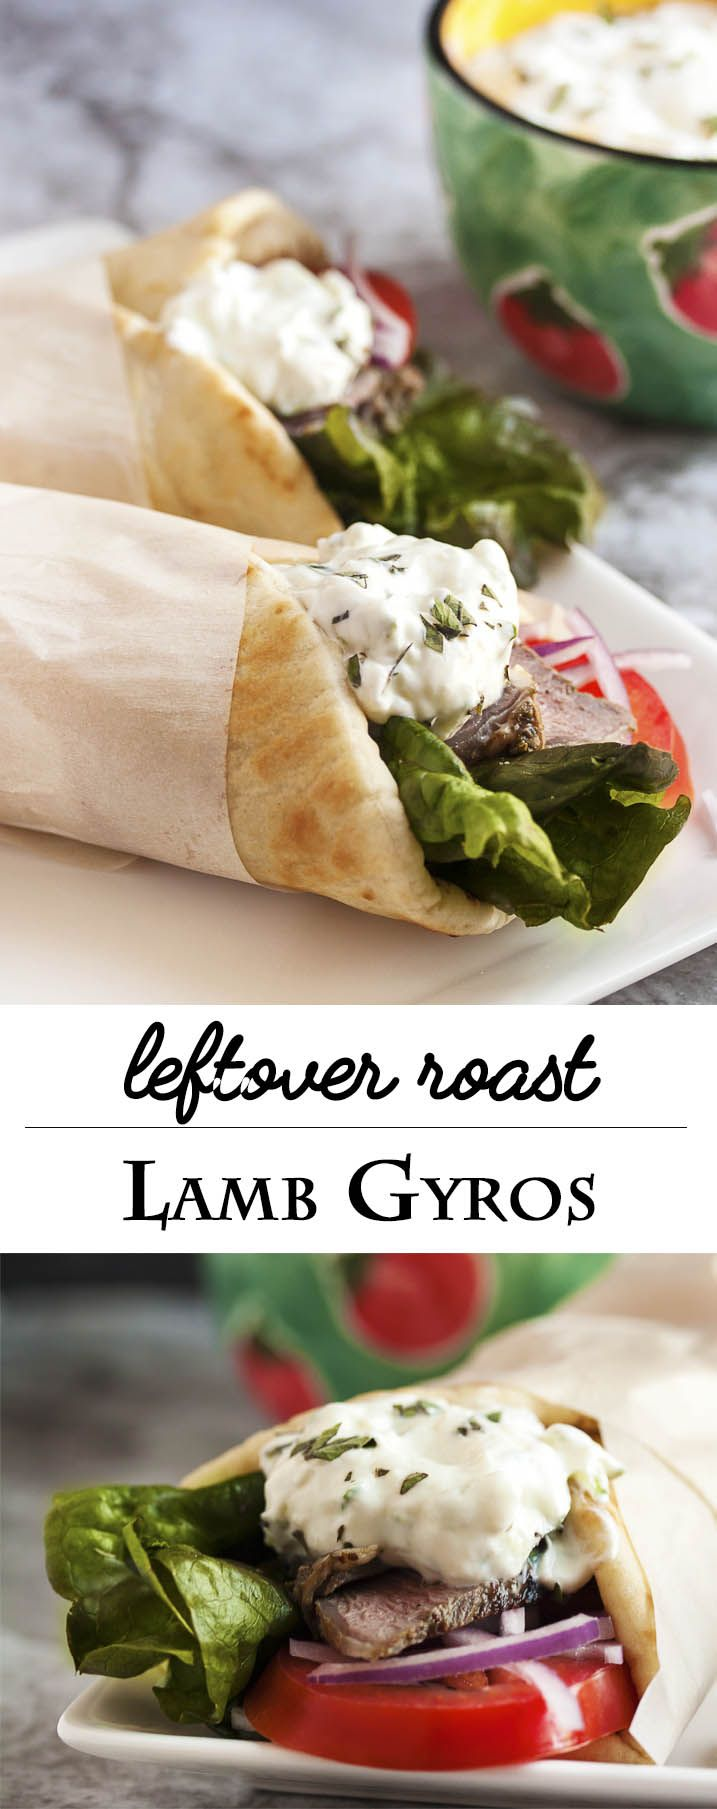 Leftover Lamb Gyros with Tzatziki Sauce - What to do with leftover lamb roast? Make these incredibly yummy lamb gyros and top them with a 5 minute tzatziki sauce. | justalittlebitofbacon.com